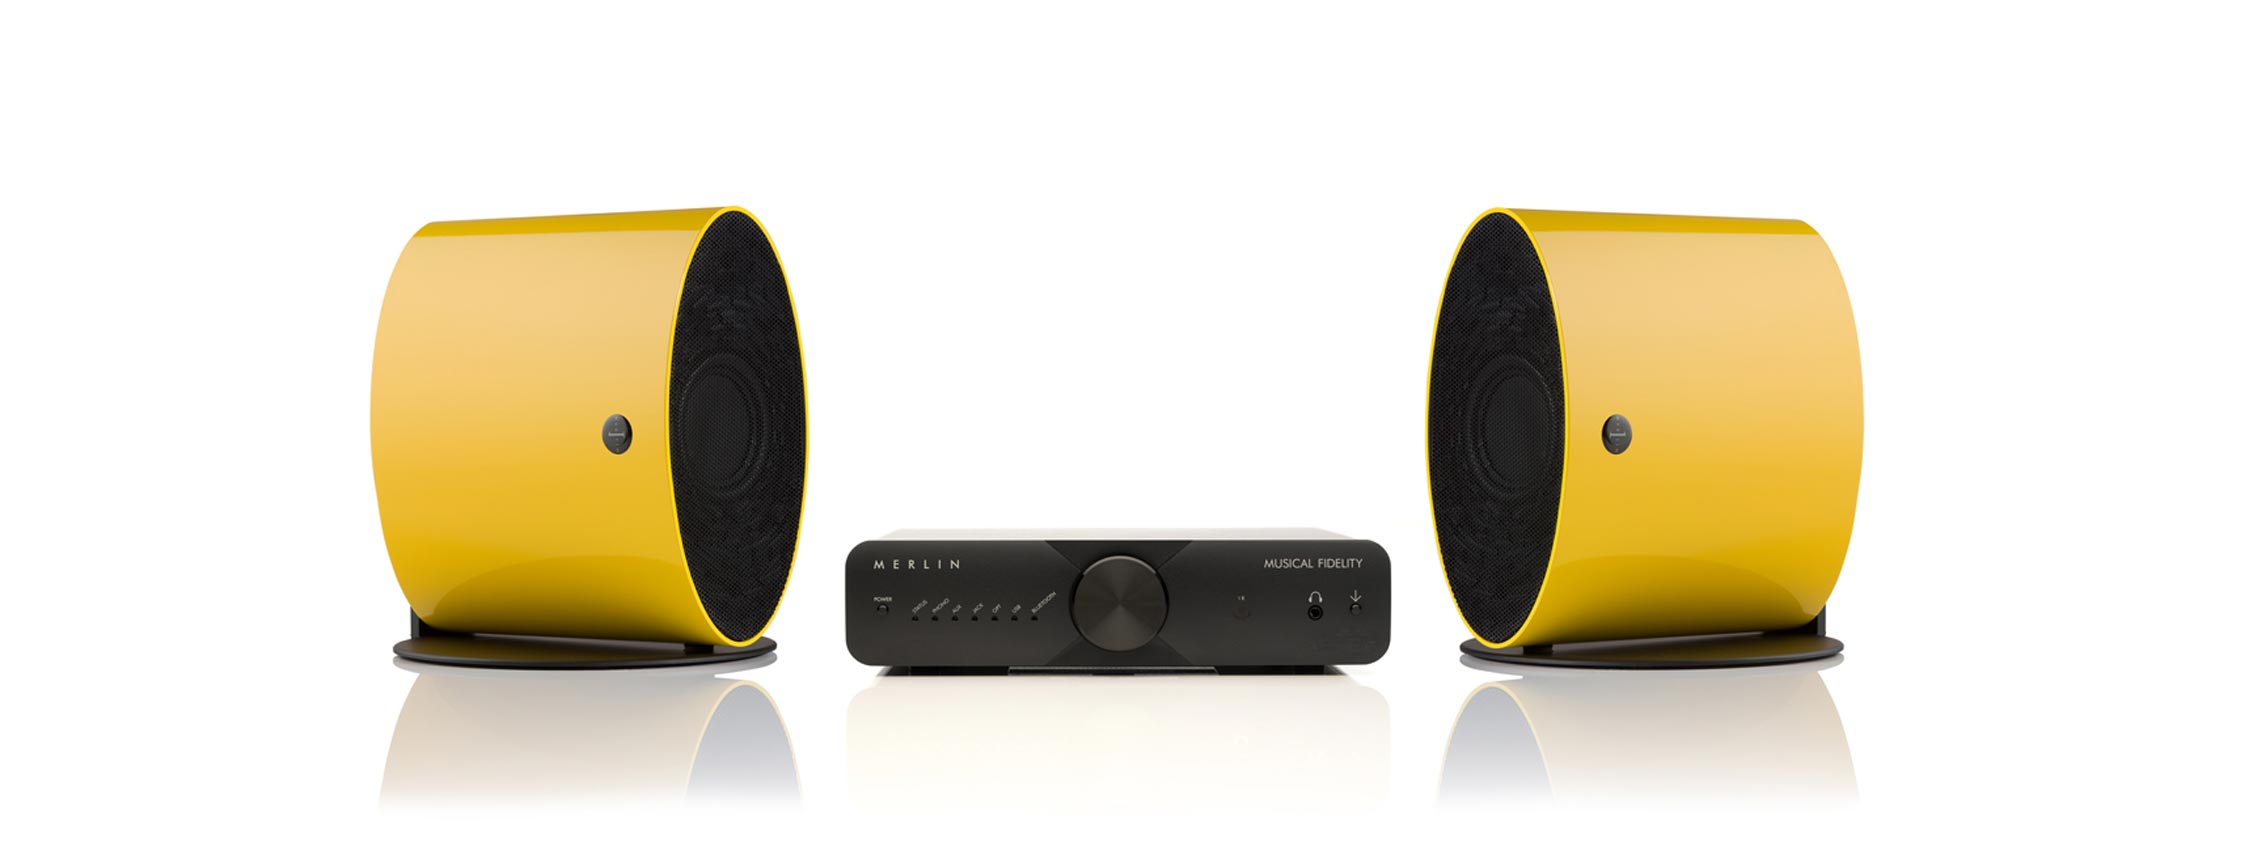 Merlin Yellow Loudspeakers by Musical Fidelity